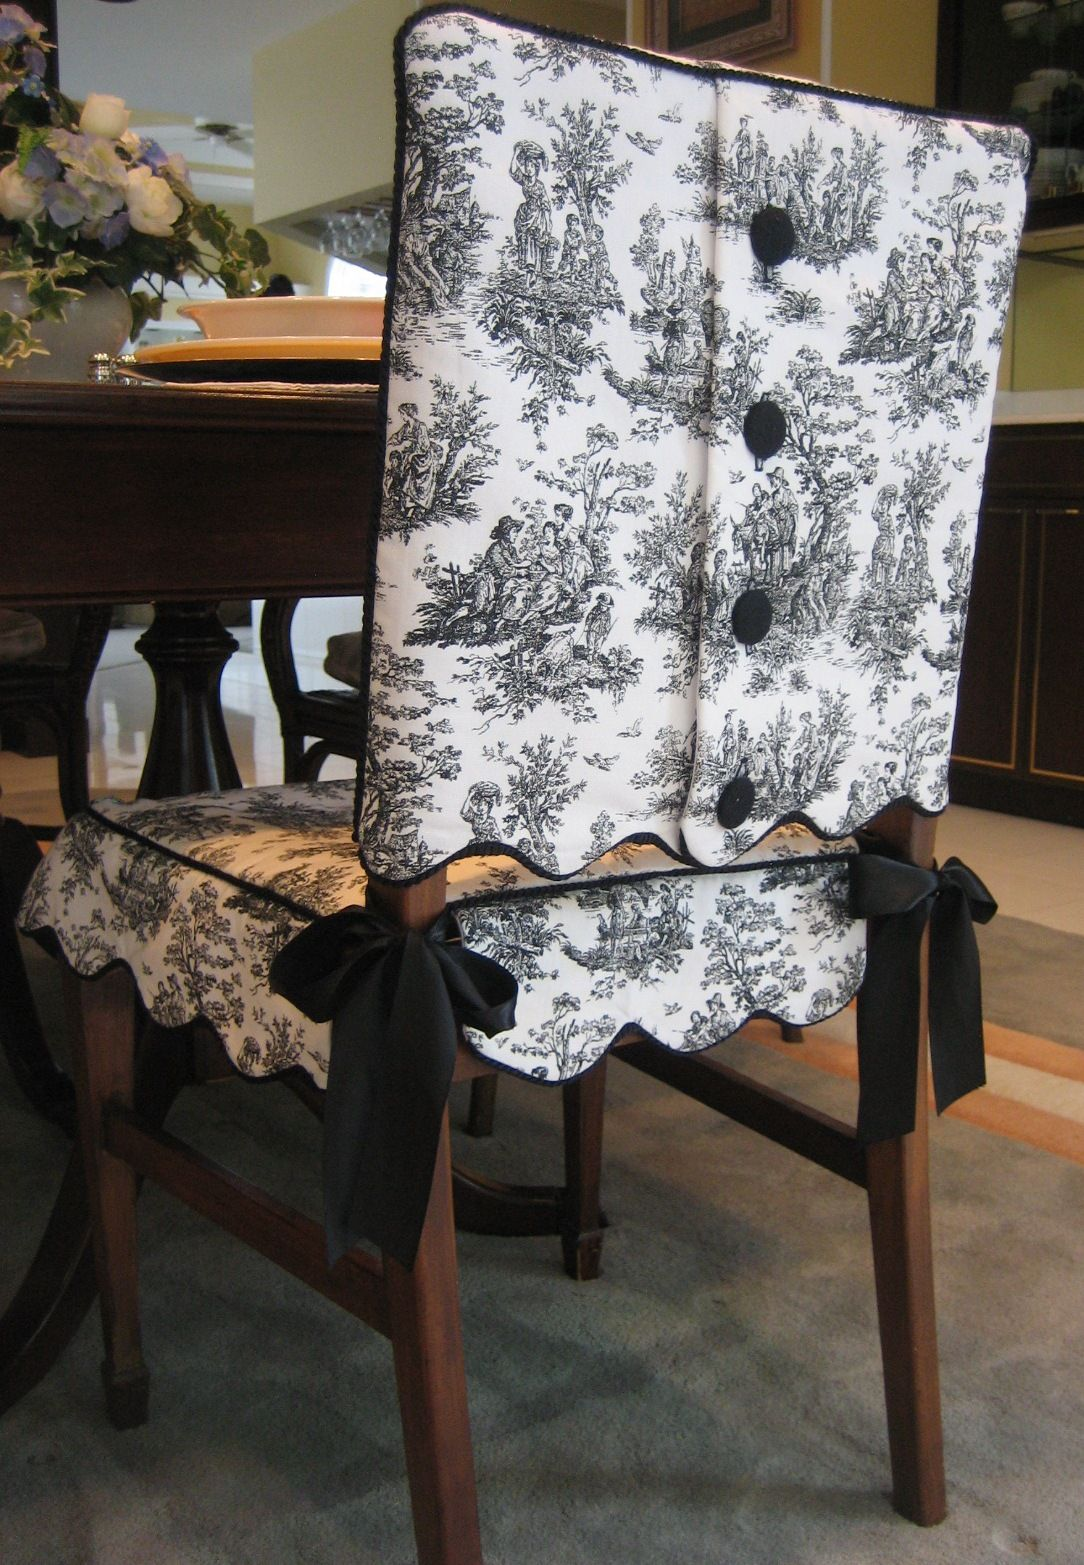 Ikea Dining Suites This Is My Scalloped Edge Toile Chair Suit With Covered